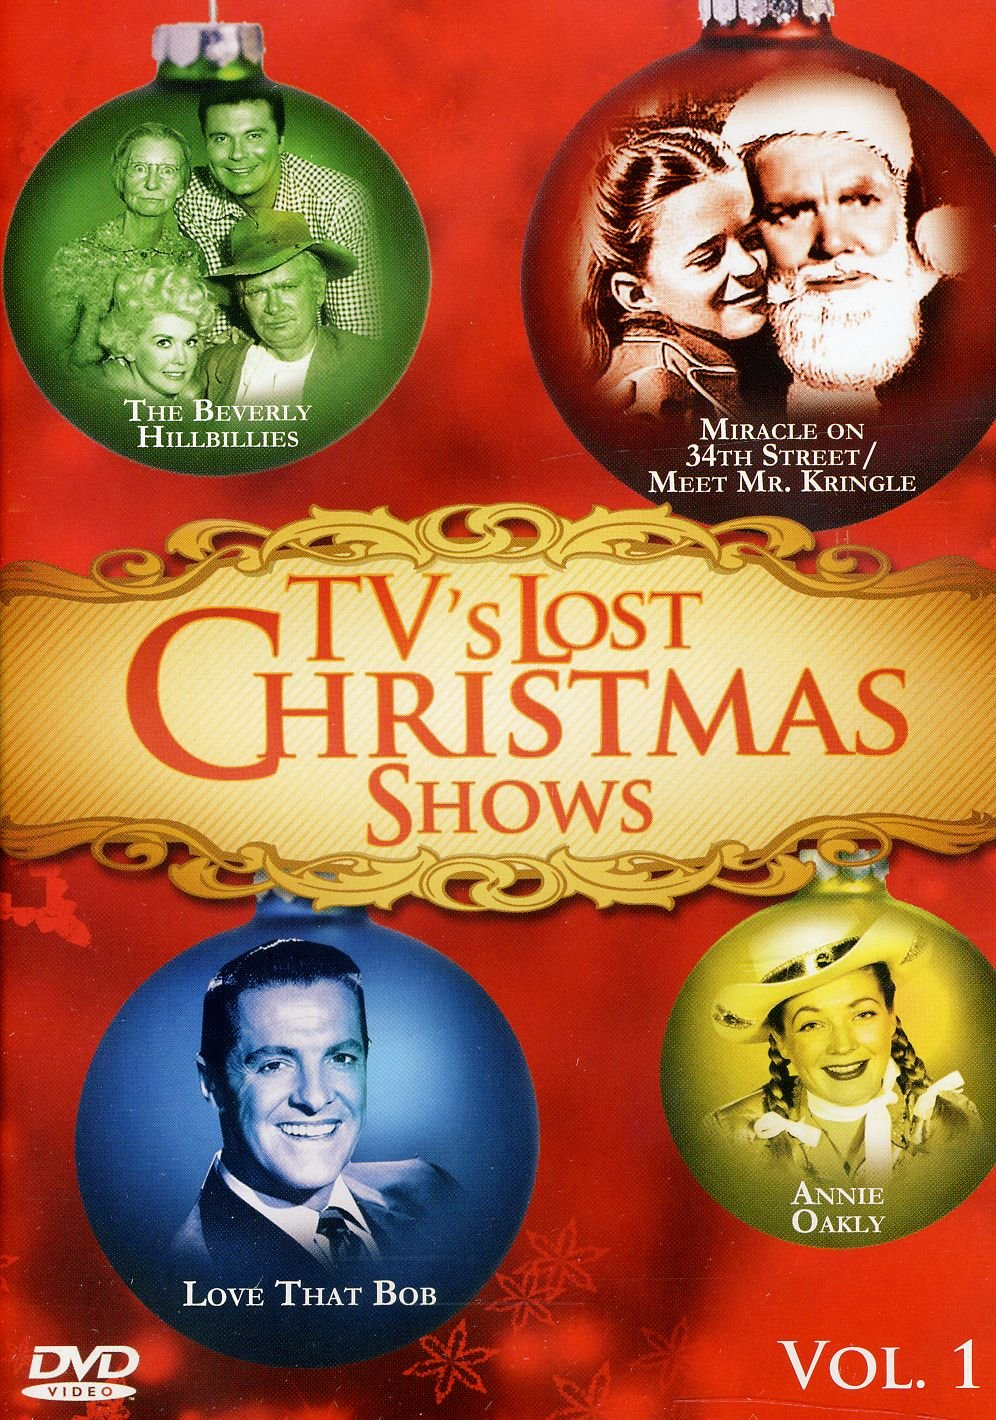 TV's Lost Christmas Shows contains some of the greatest TV Christmas shows produced during the 1950's and 1960's. Nostalgic shows such as The Beverly Hillbillies, Ozzie and Harriet, Love That Bob, and many more bringing holiday cheer, Christmas miracles and suspense to be treasured for generations.